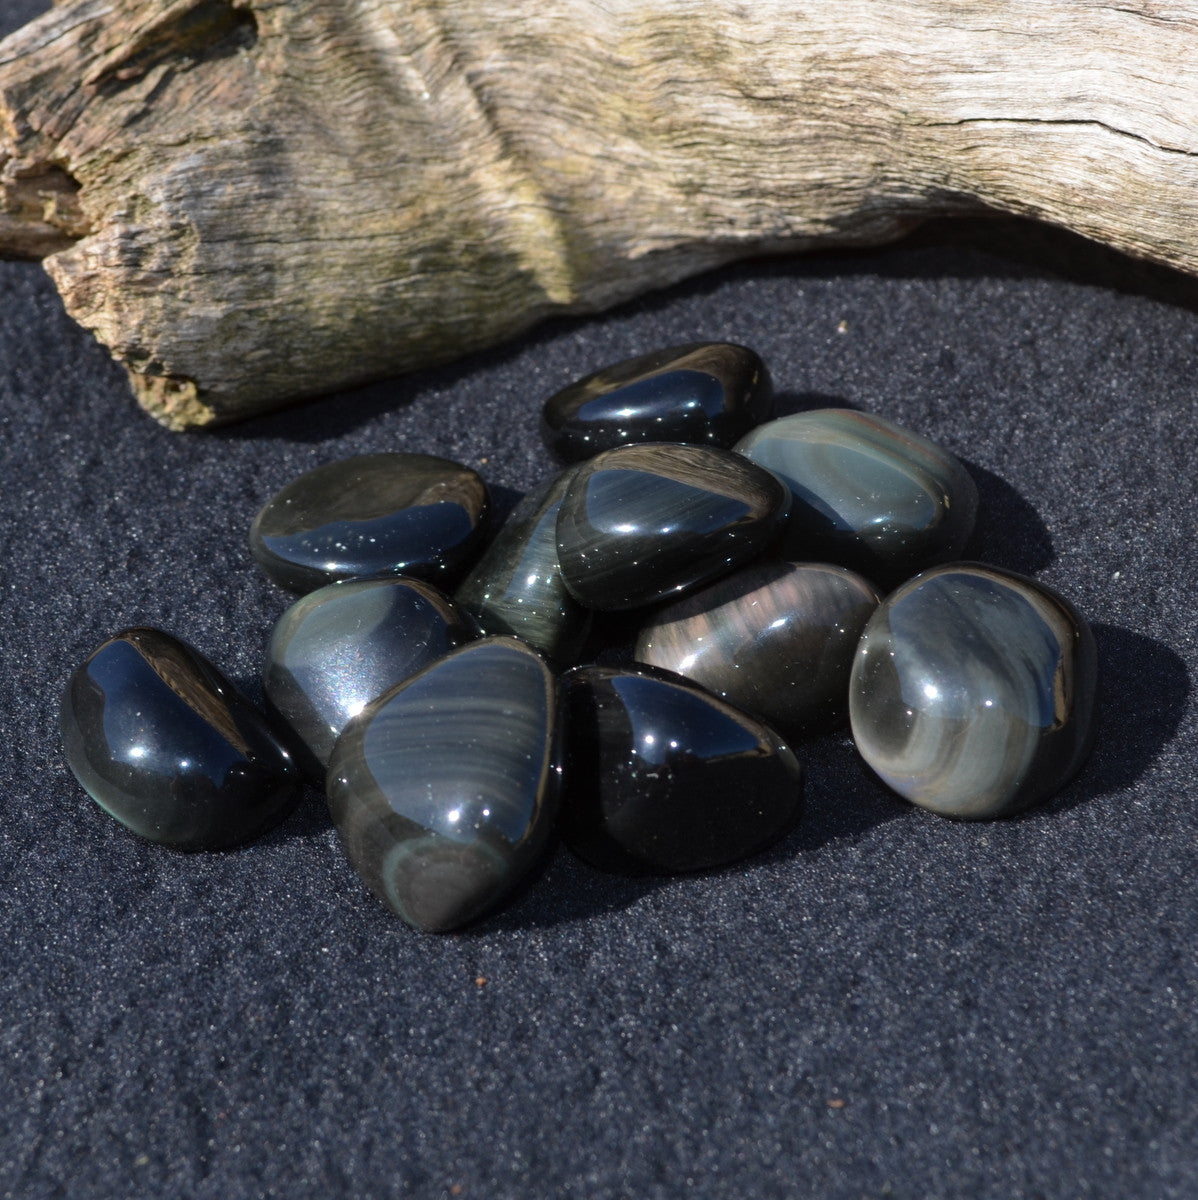 Rainbow Obsidian Large Tumble Stone Each - Joy Happiness Protection - Illiom Crystals